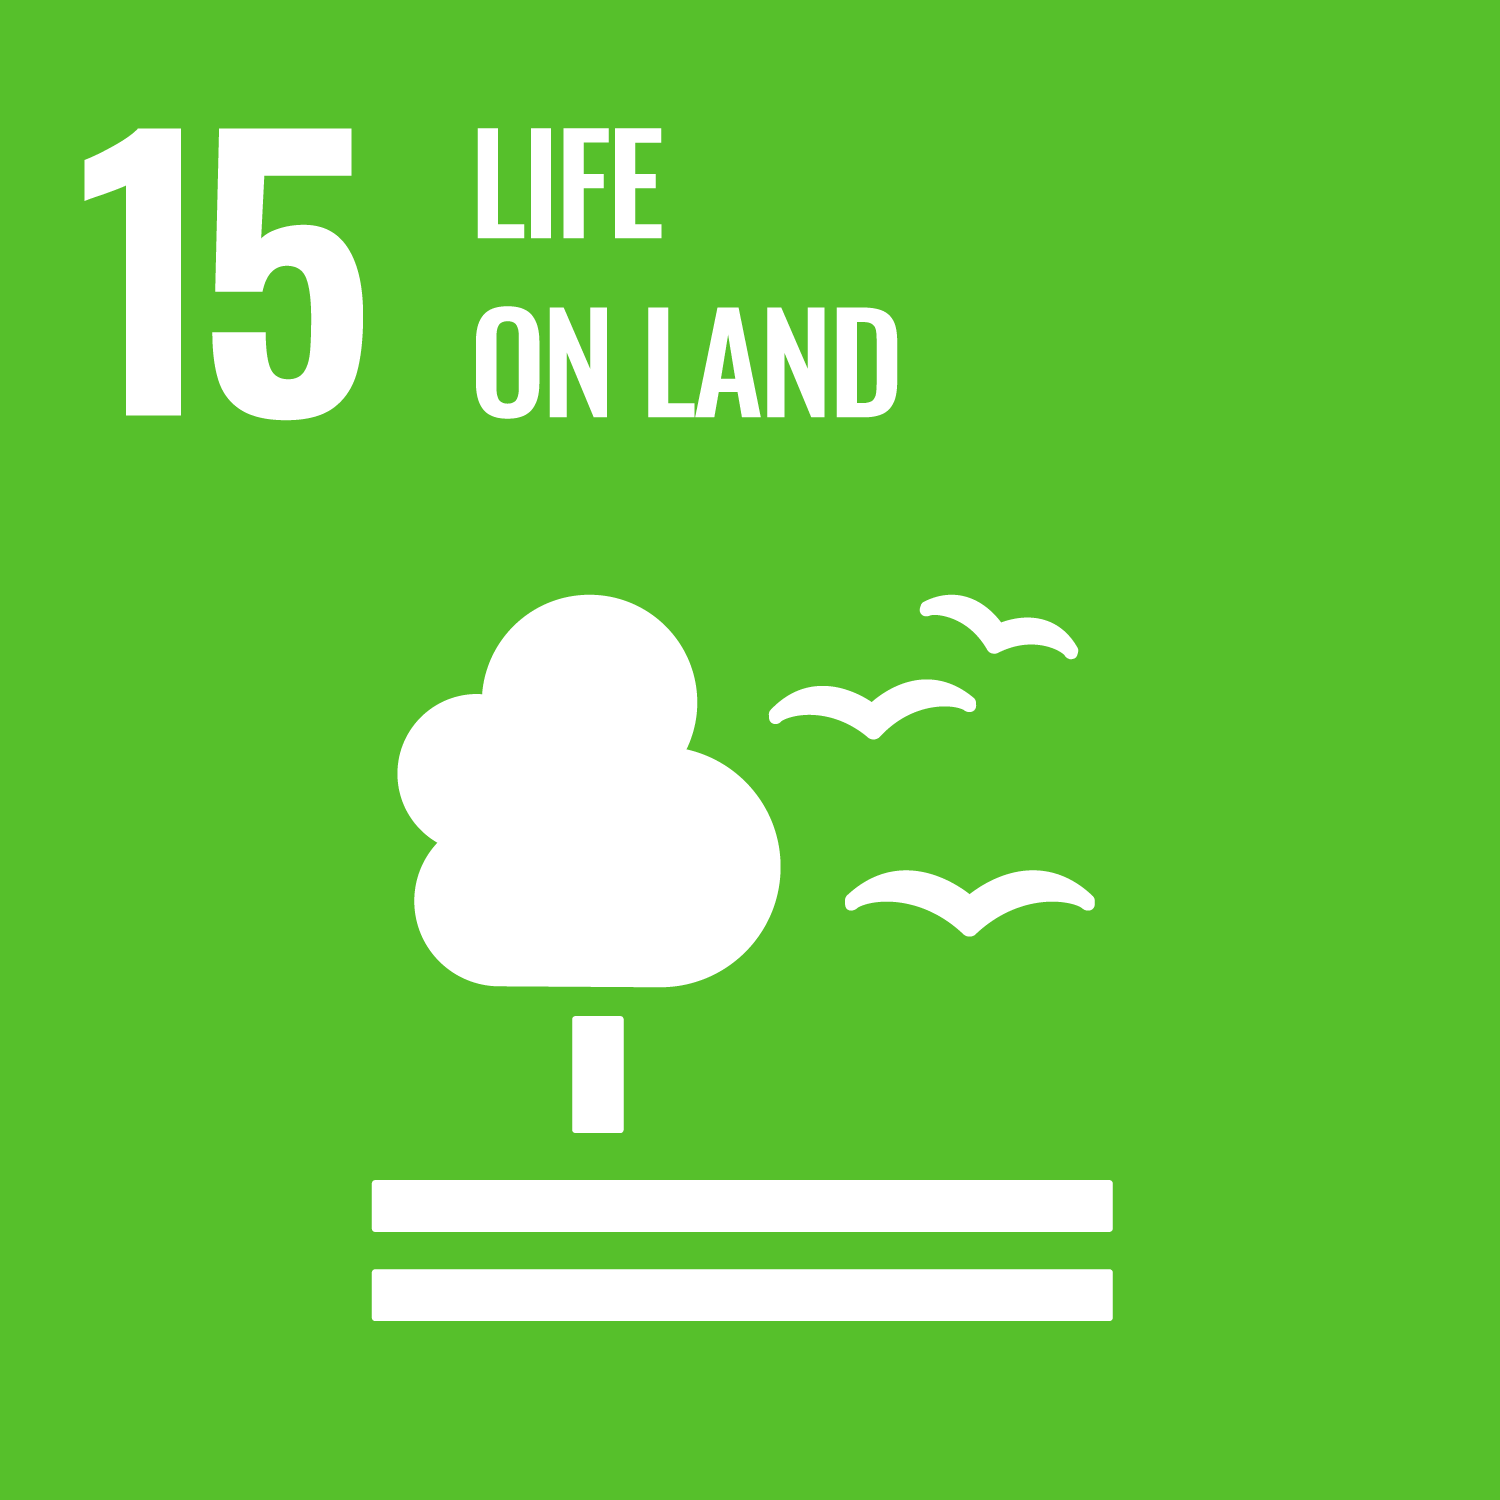 UN sustainable development goal number 15 Life on land. Link to goal number 15.